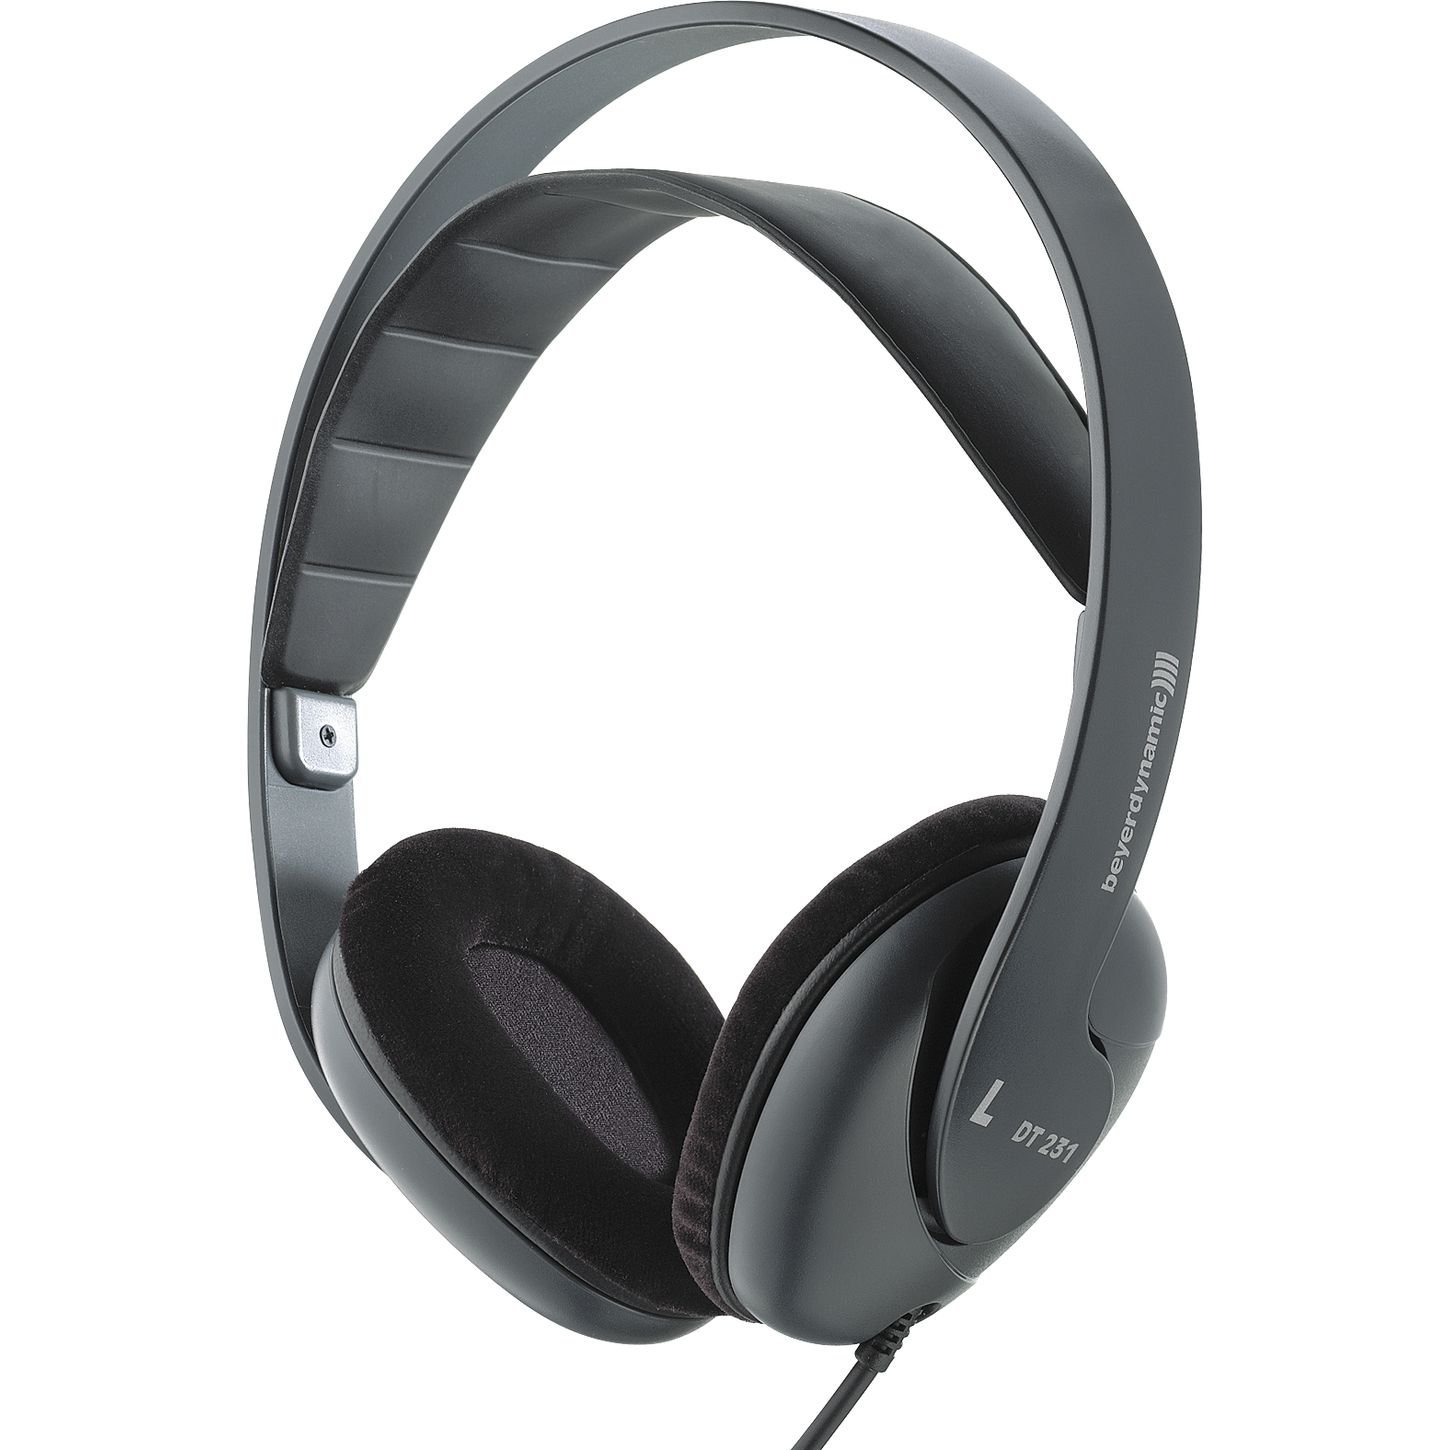 Beyerdynamic DT231 Headphones